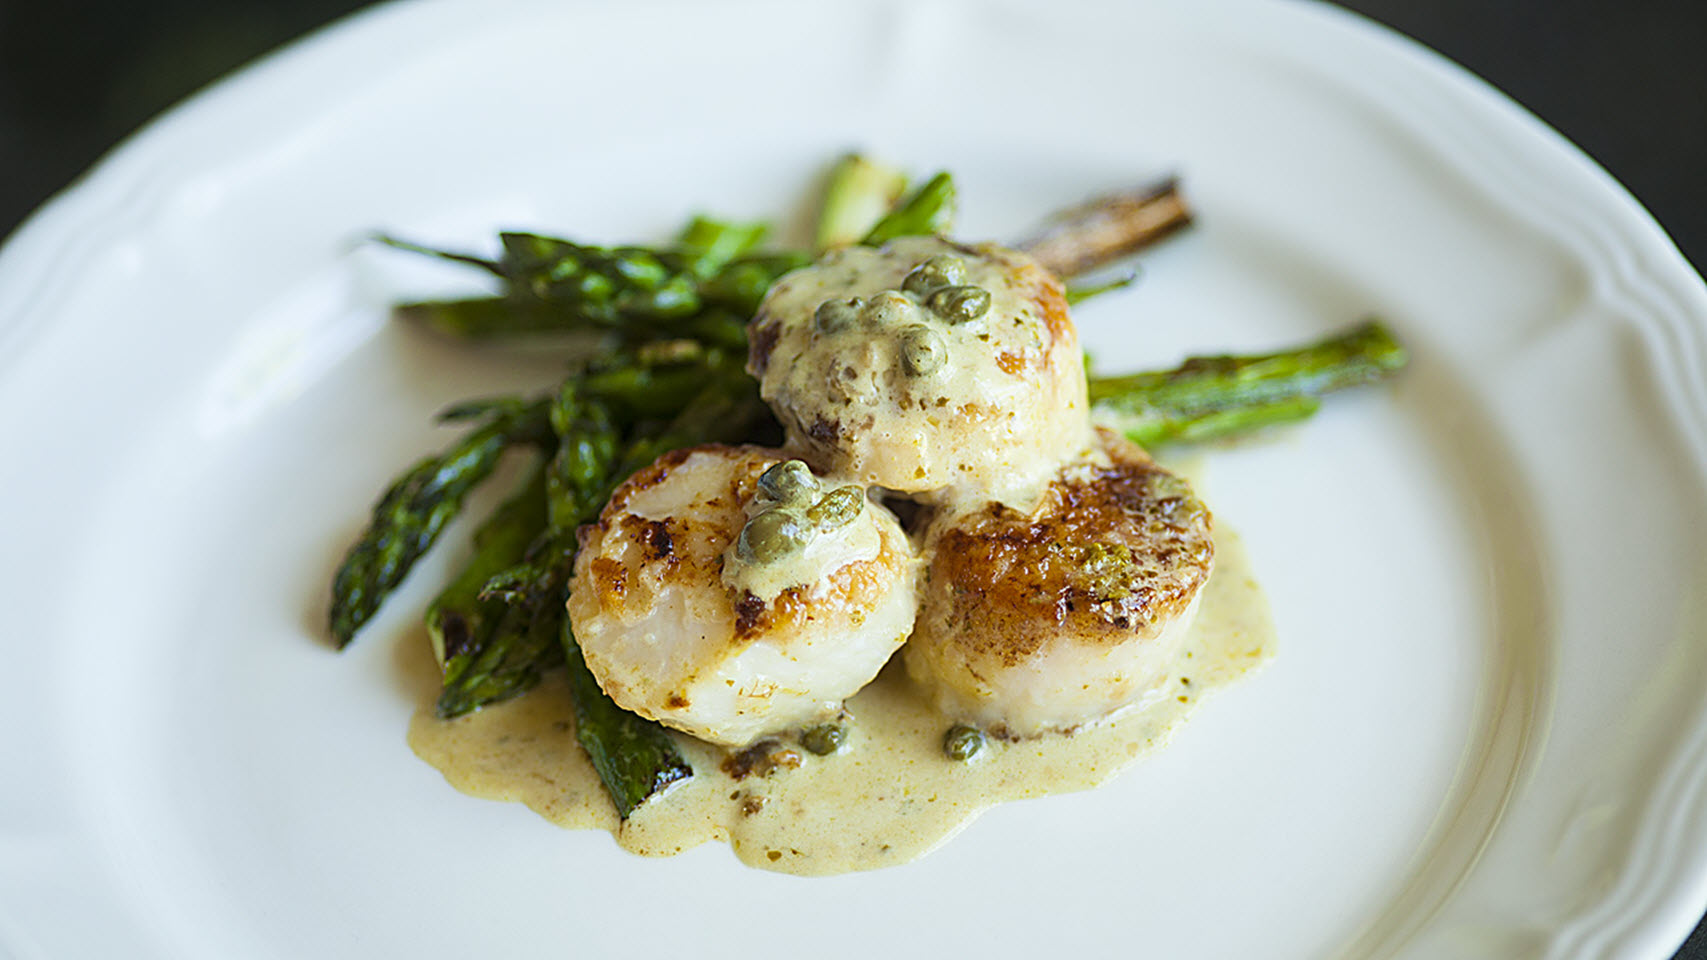 Scallops with Pesto Cream Sauce